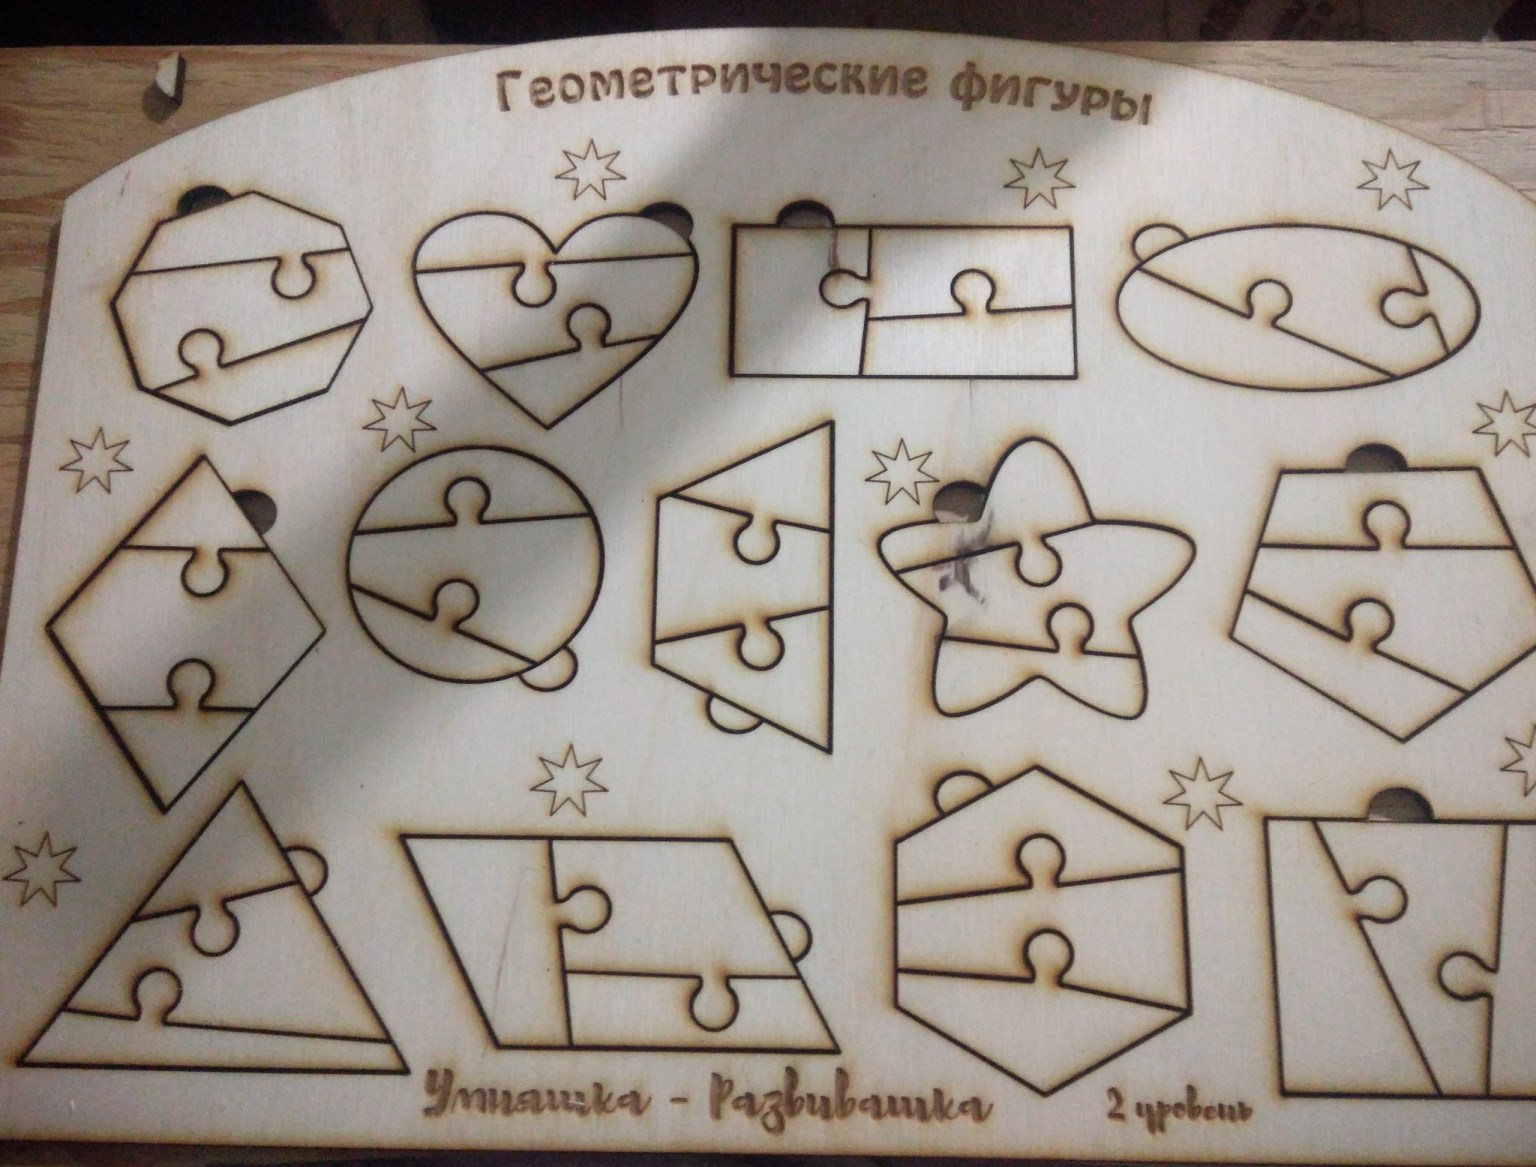 Geometric Shapes Puzzle Game For Kids Laser Cut Free CDR Vectors Art